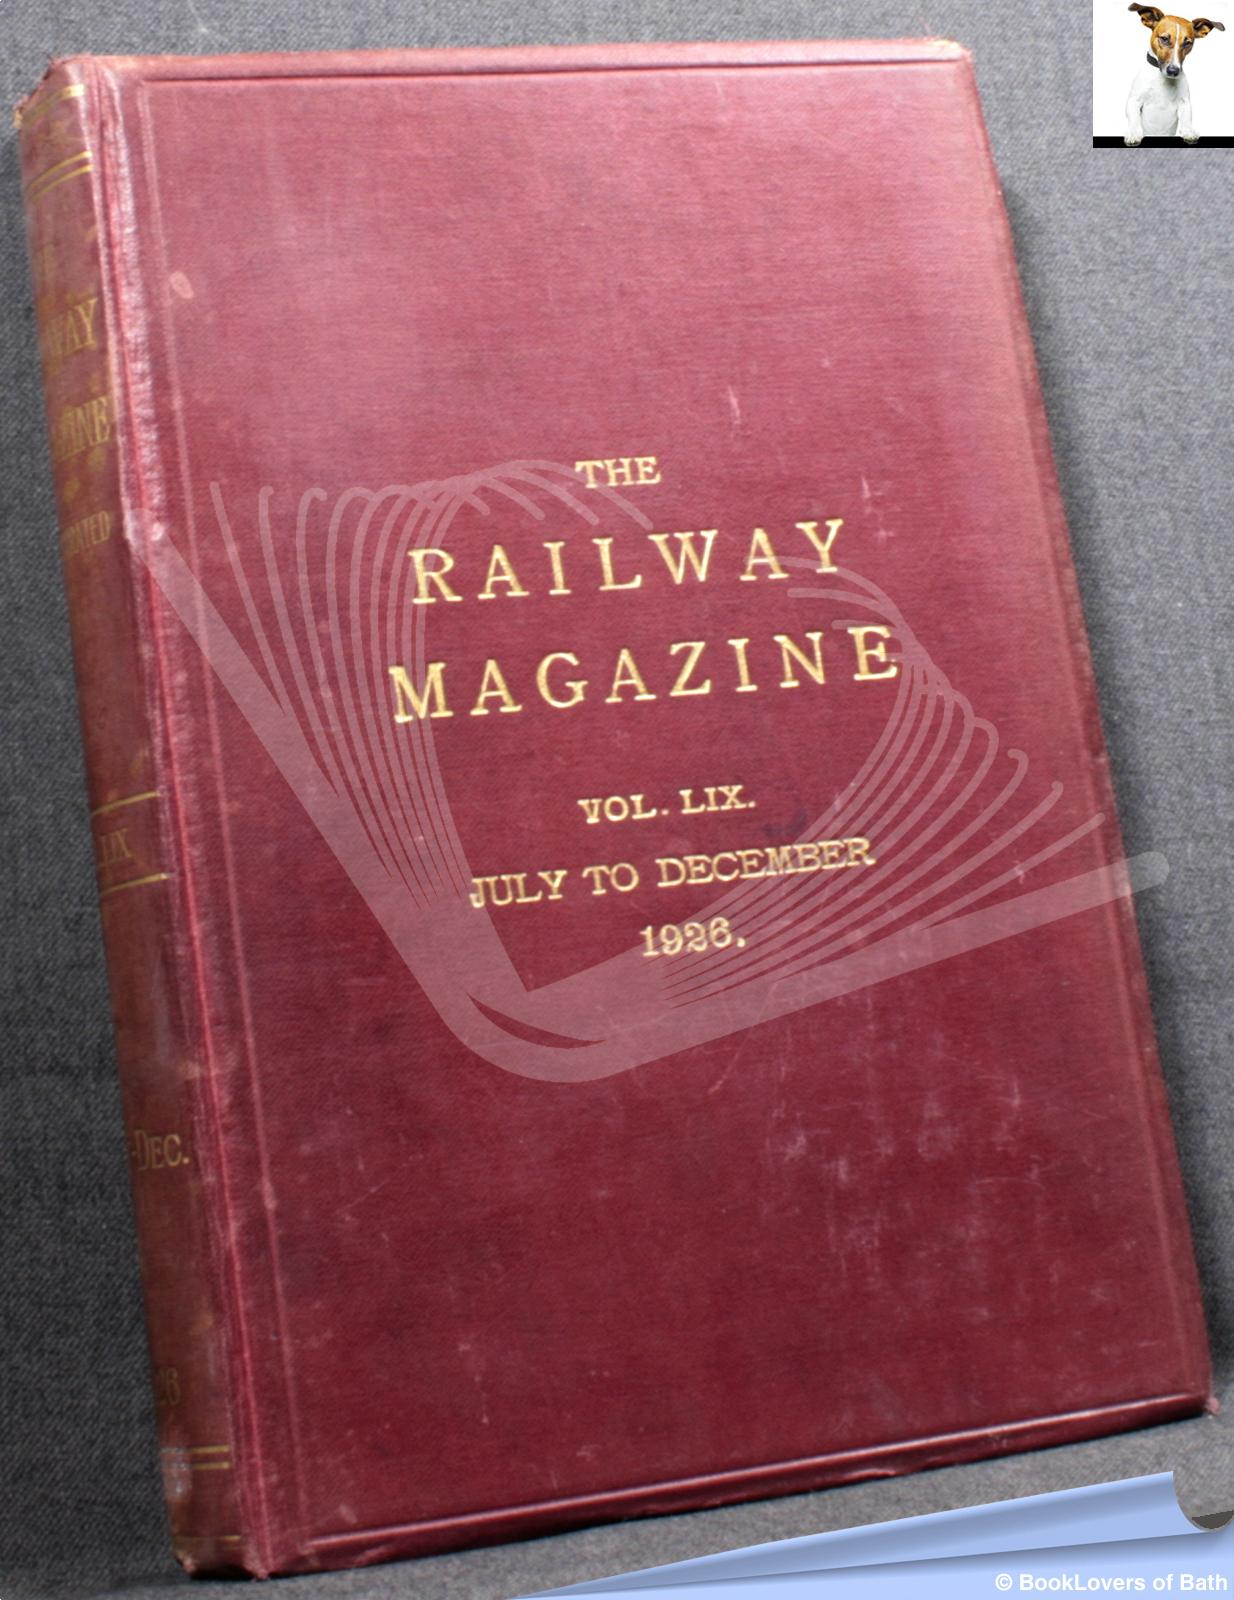 The Railway Magazine Vol. LIX July to December 1926 - Anon.